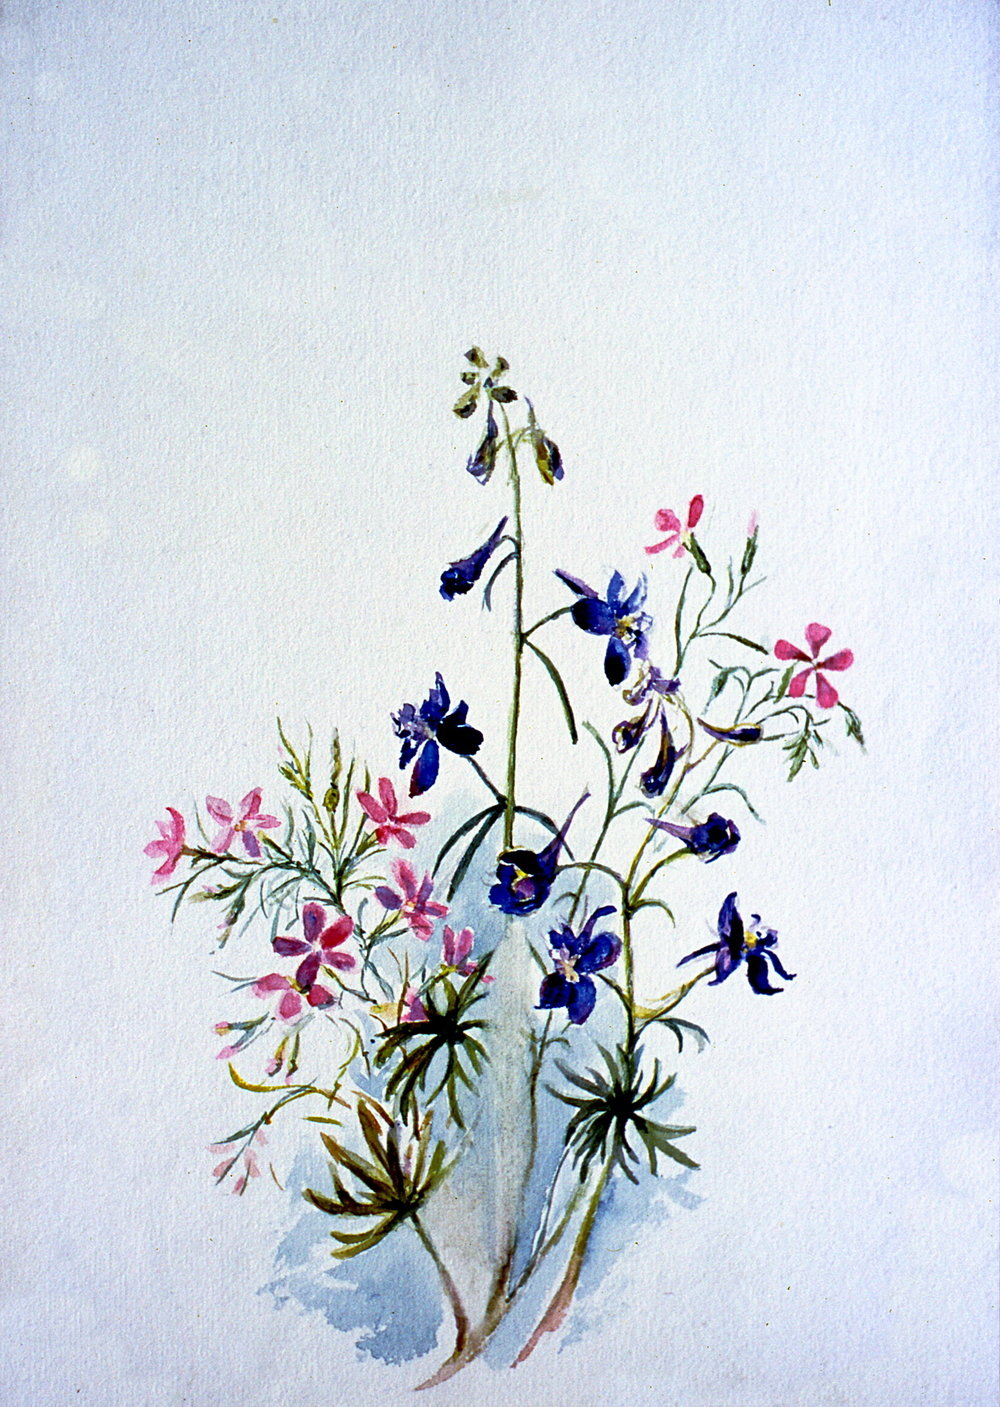 Untitled (Botanical - Pink & Blue Flowers), n.d. Julia Bullock Webster, watercolour on paper, 35 cm x 25.2 cm, 2003.02.17, gift of The Grist Mill at Keremeos